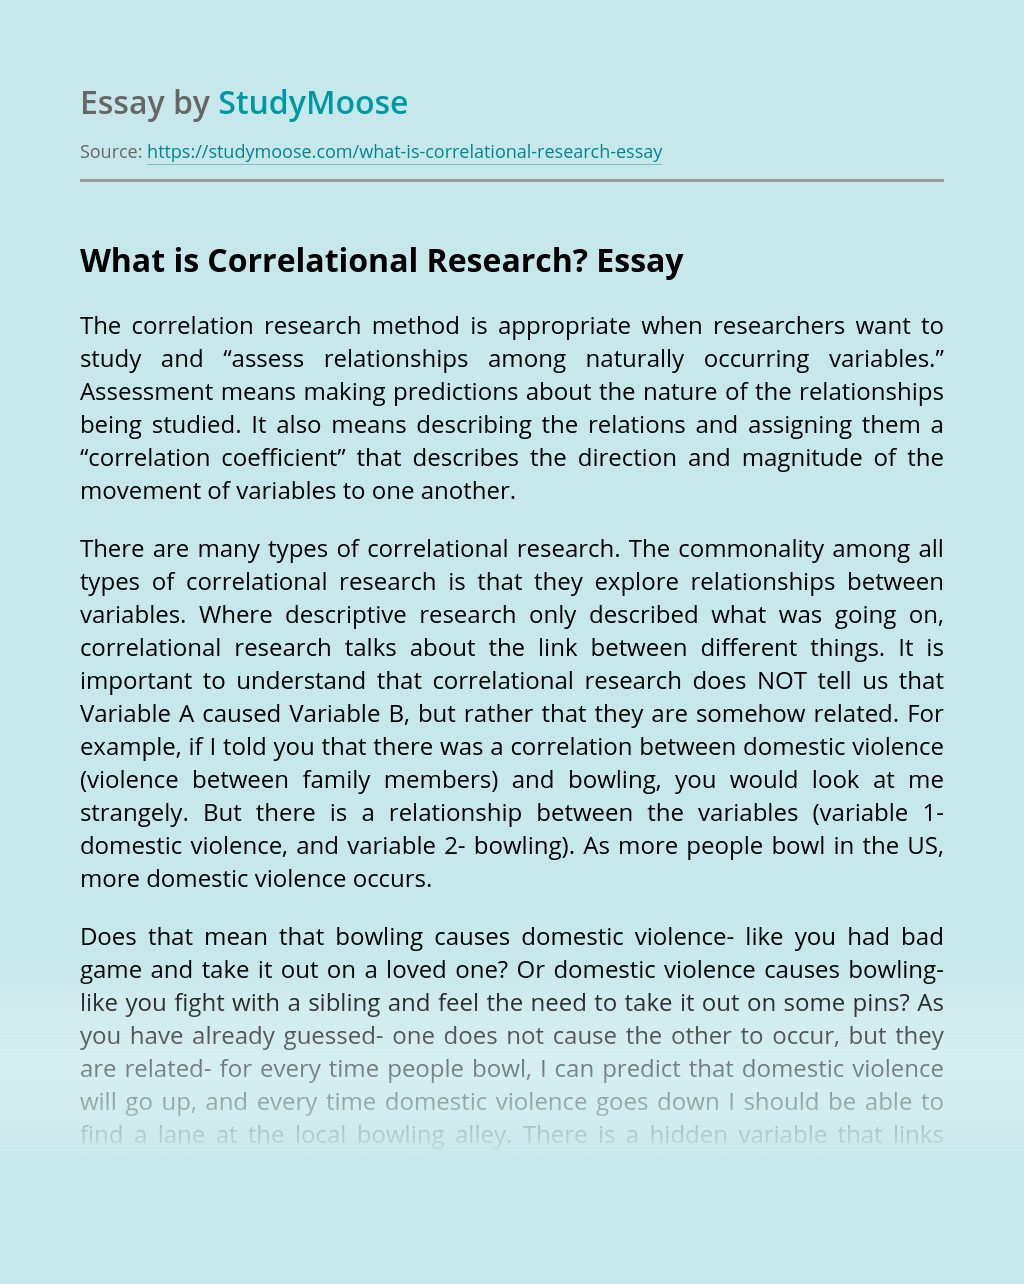 What is Correlational Research?